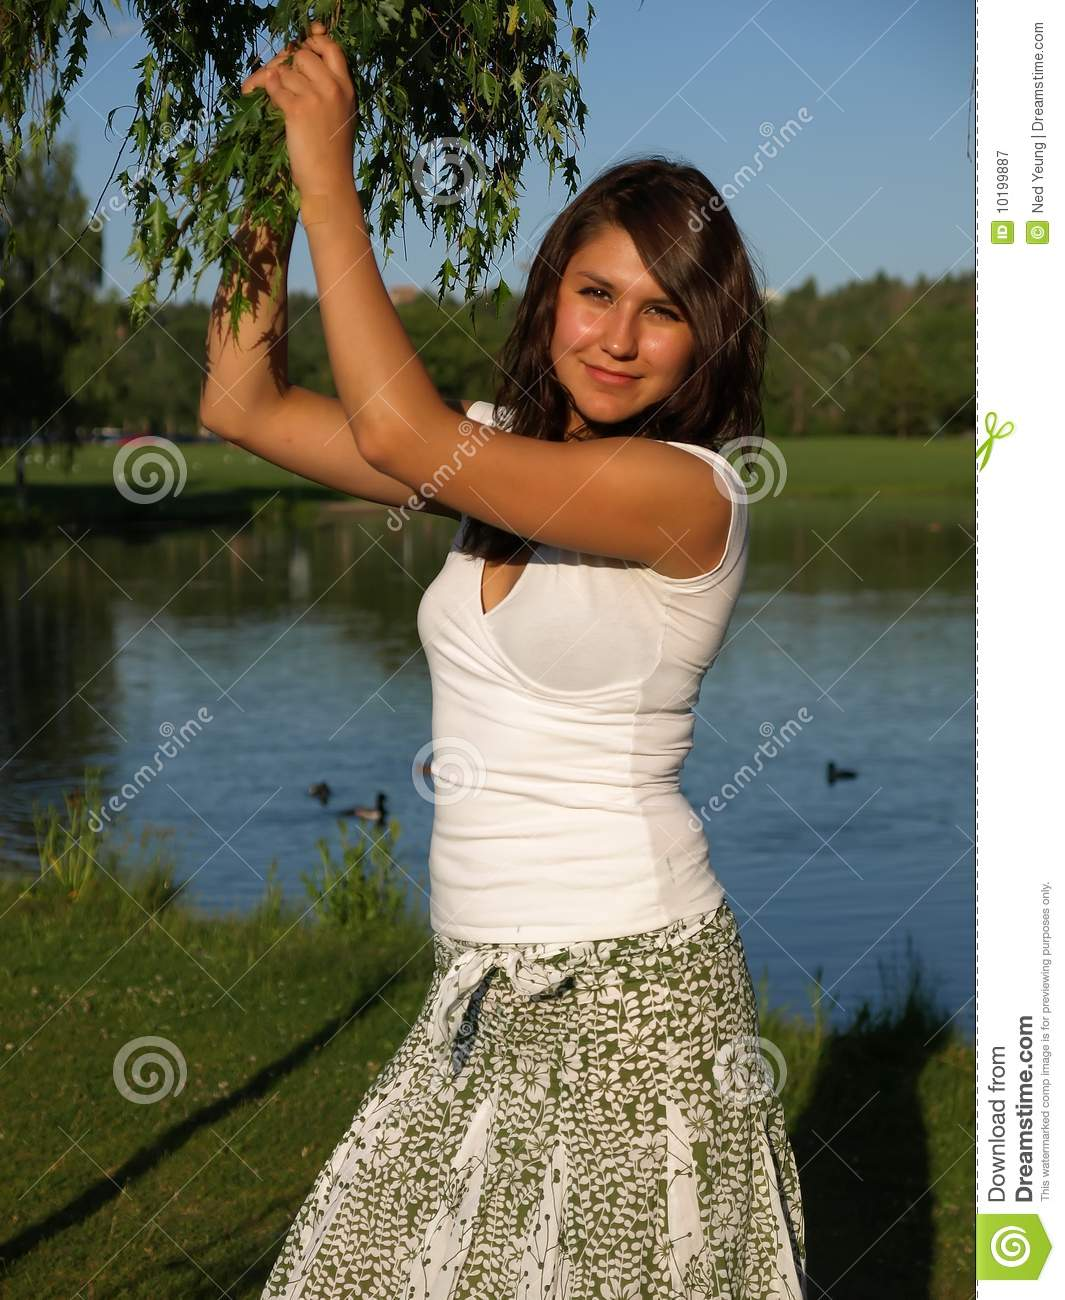 Young Woman by the lake with a tree